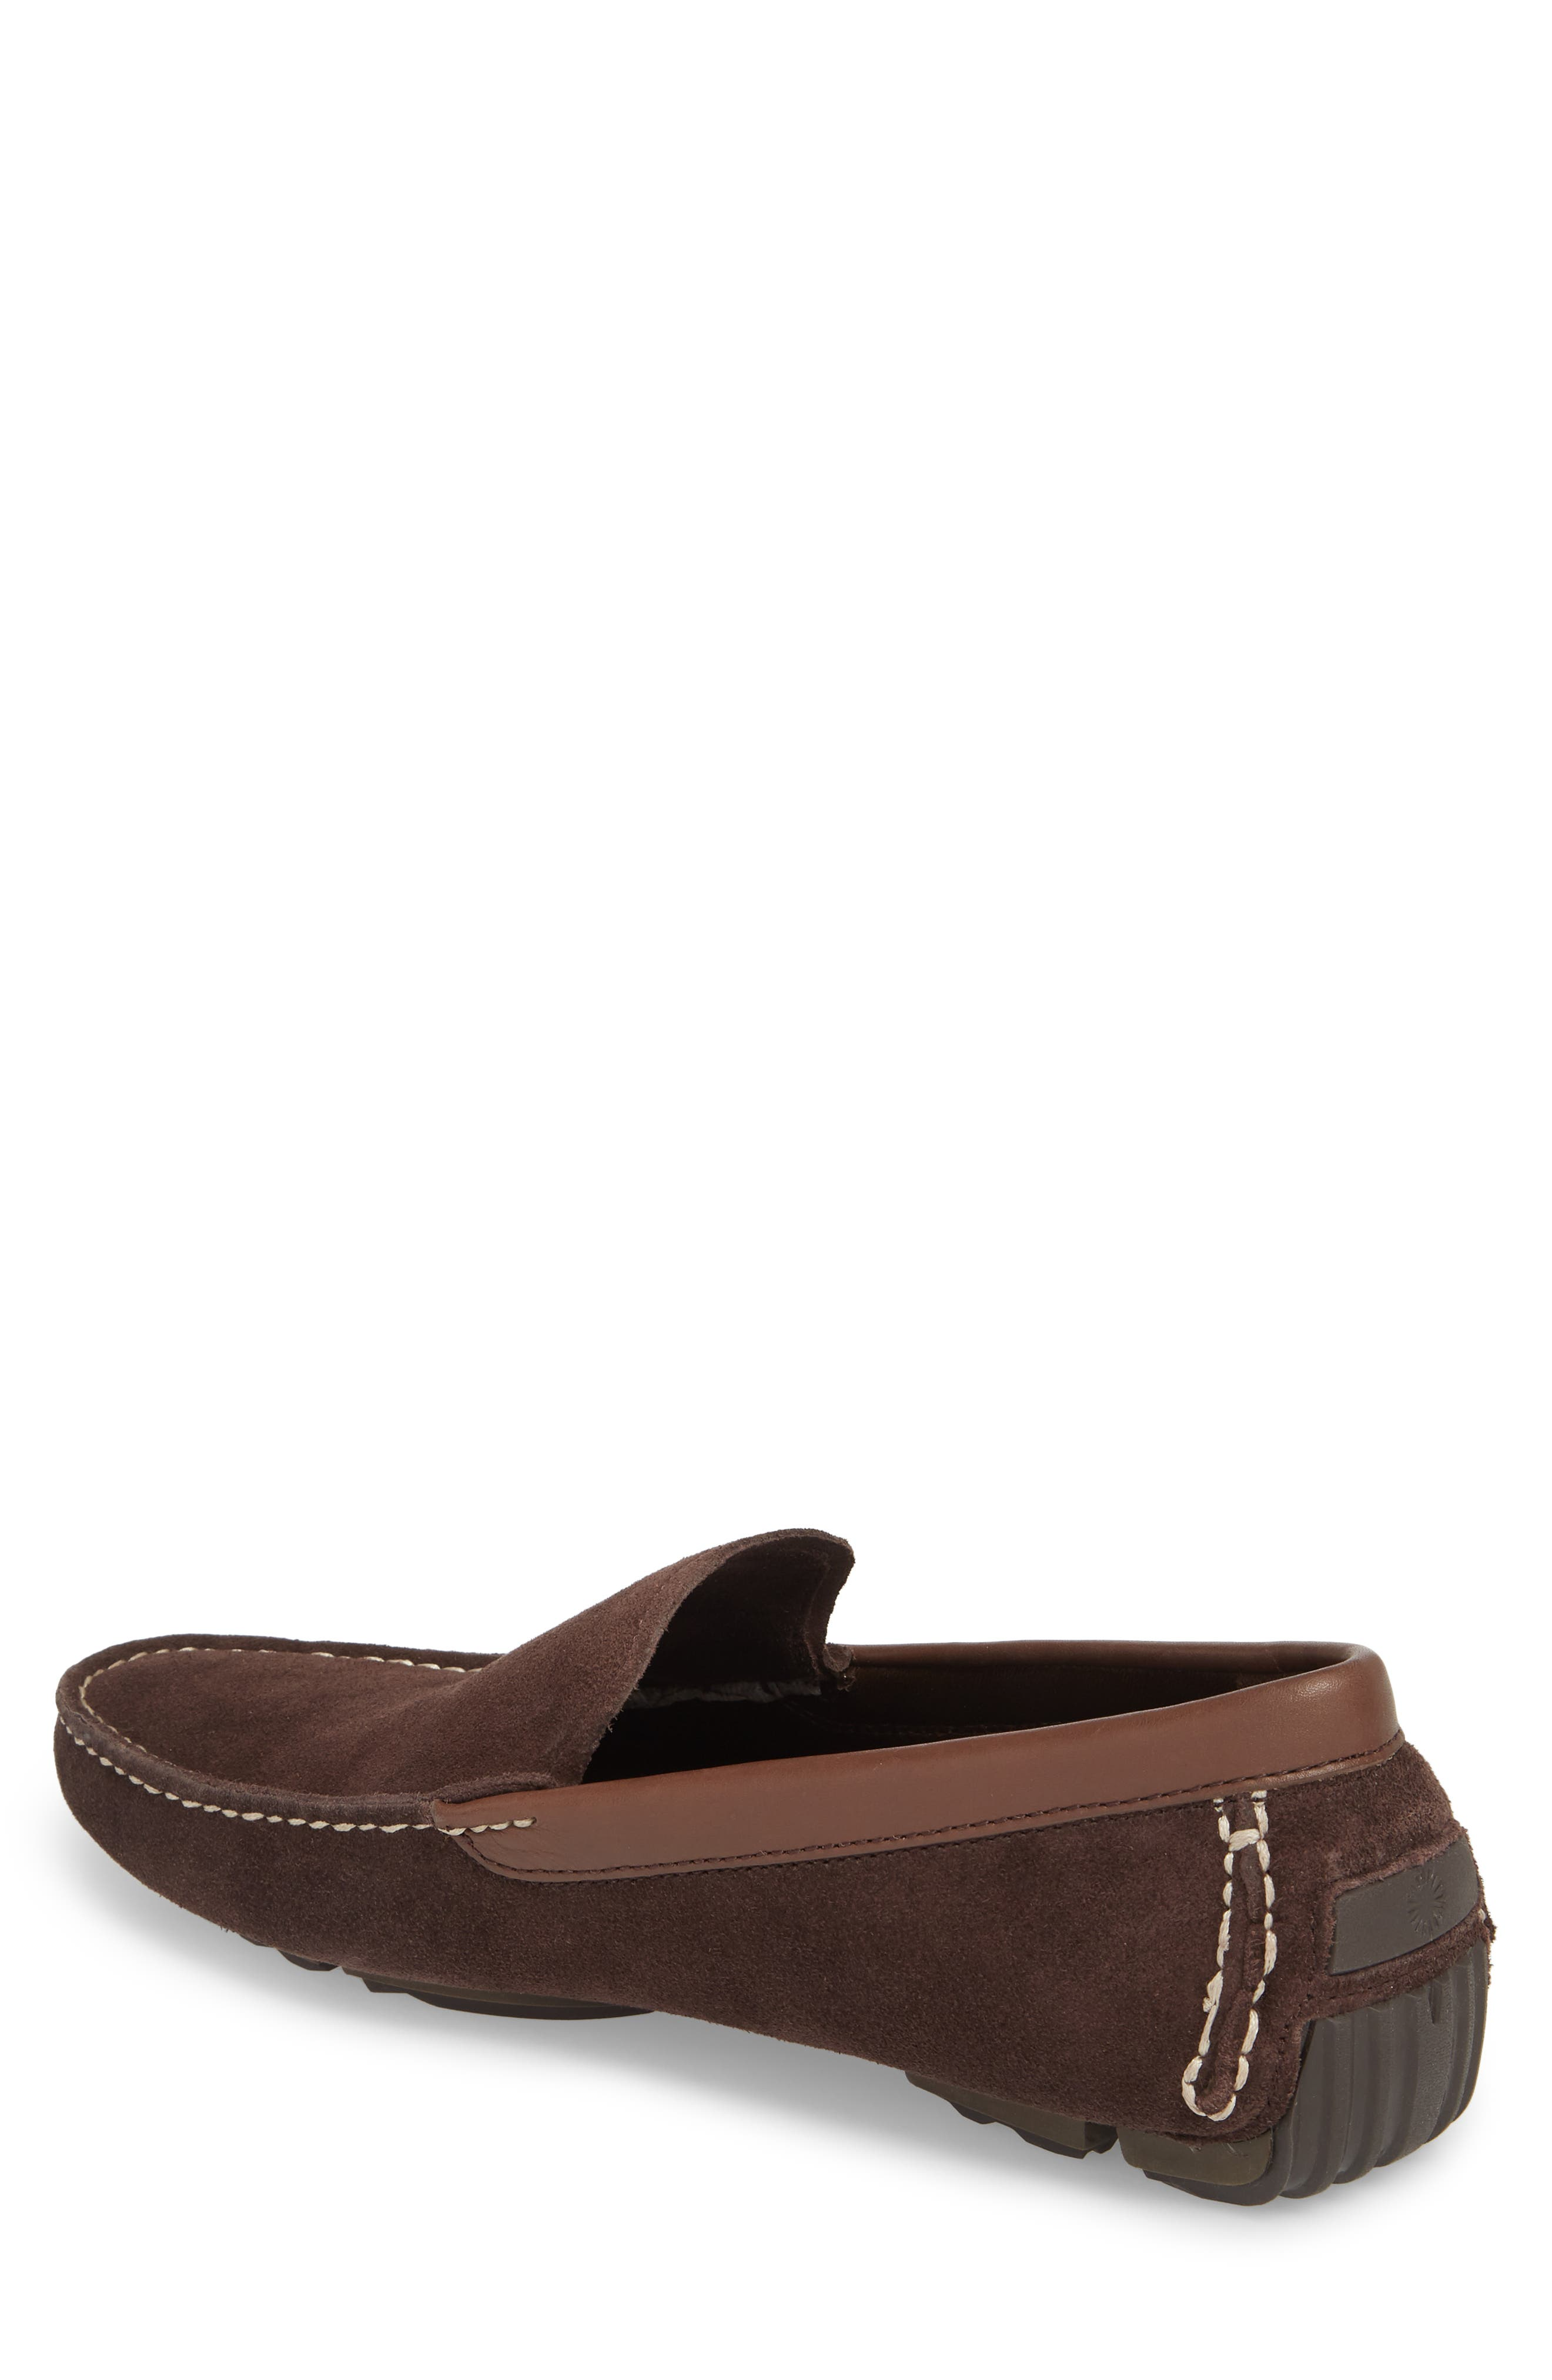 Bel-Air Driving Moccasin,                             Alternate thumbnail 2, color,                             Stout Leather